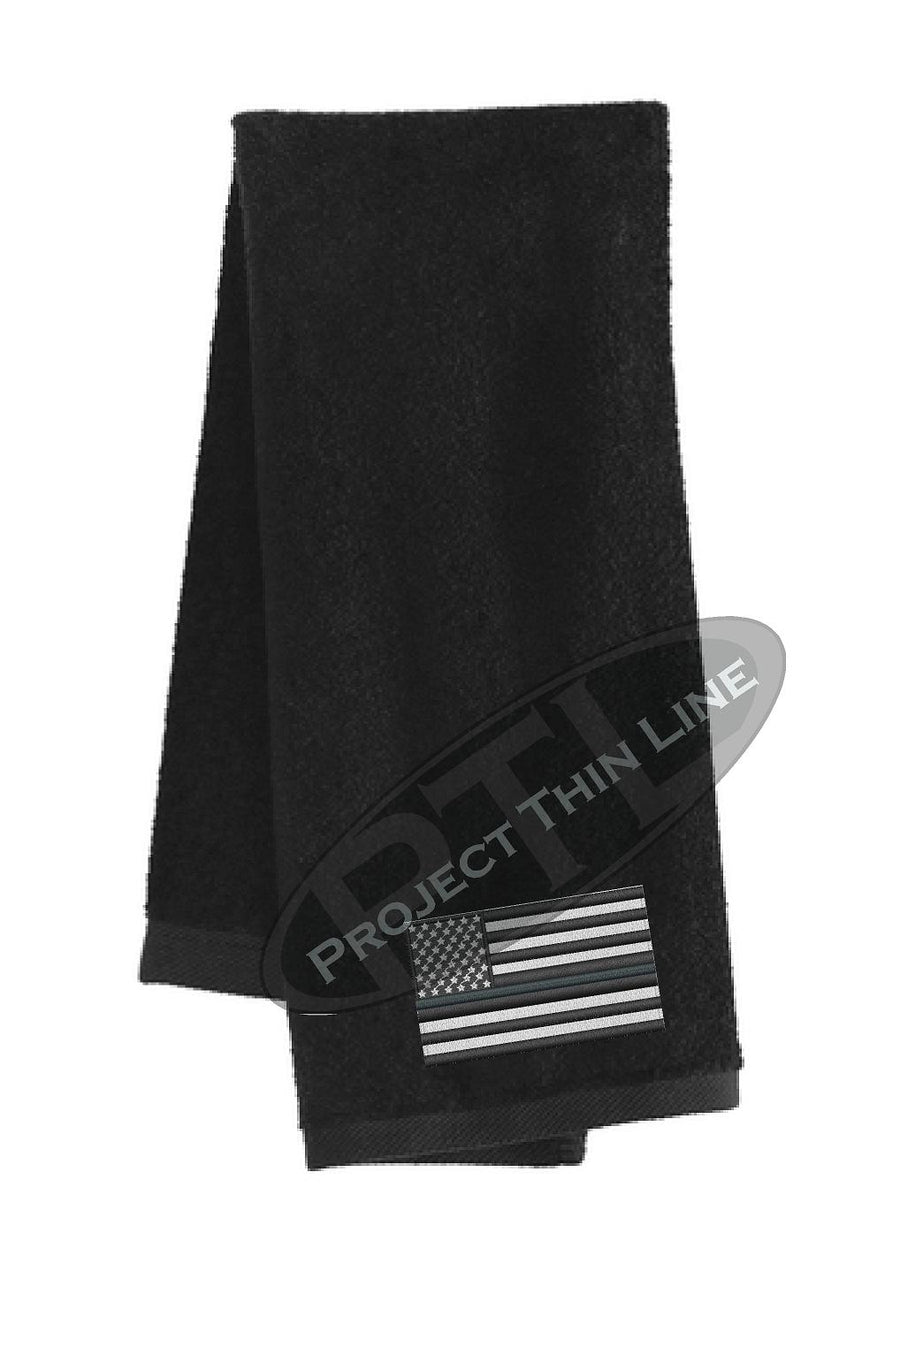 Thin SILVER Line Flag Workout Gym Towel